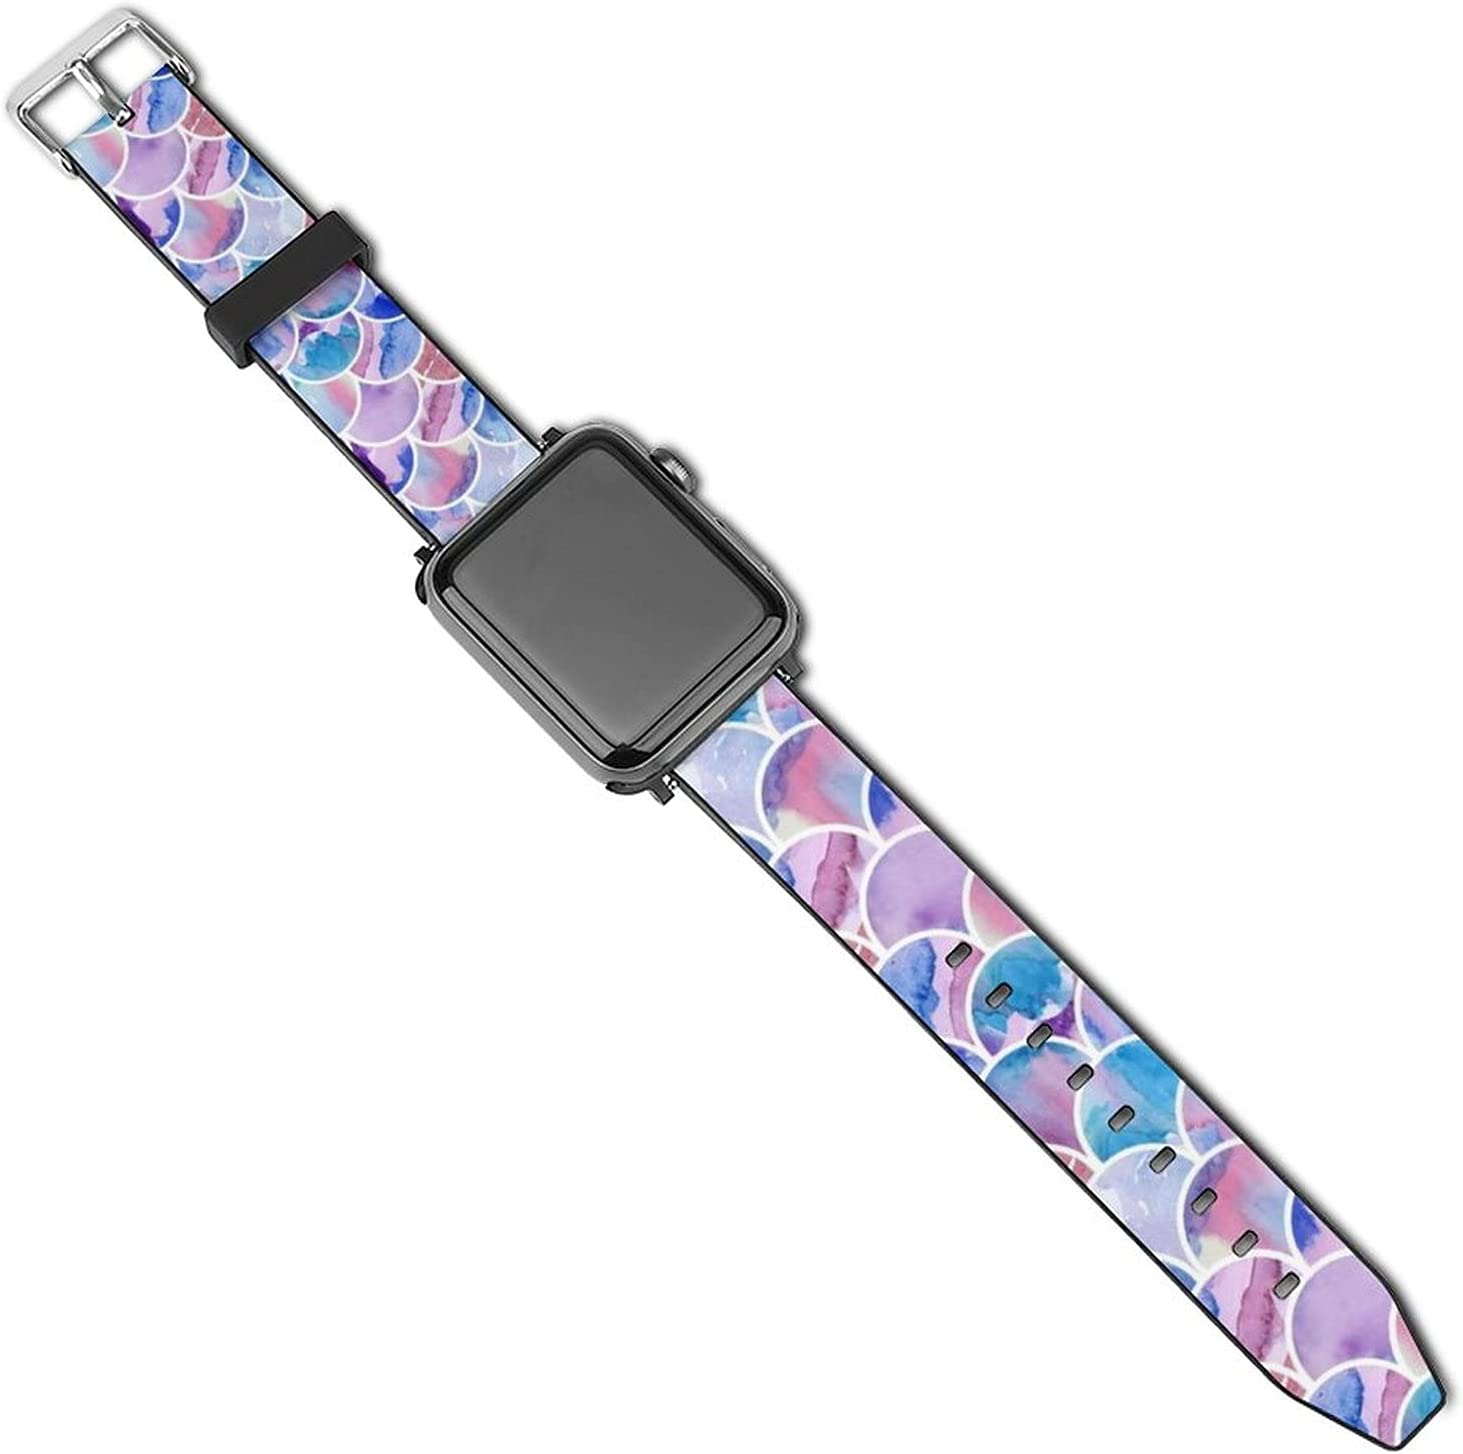 NiYoung Mens Women Colorful Mermaid Fish Scales Apple Watch Band 38mm/40mm, 42mm/44mm, Adjustable Soft Watch Bands Sport Wristband, Leather Replacement Strap with Buckles